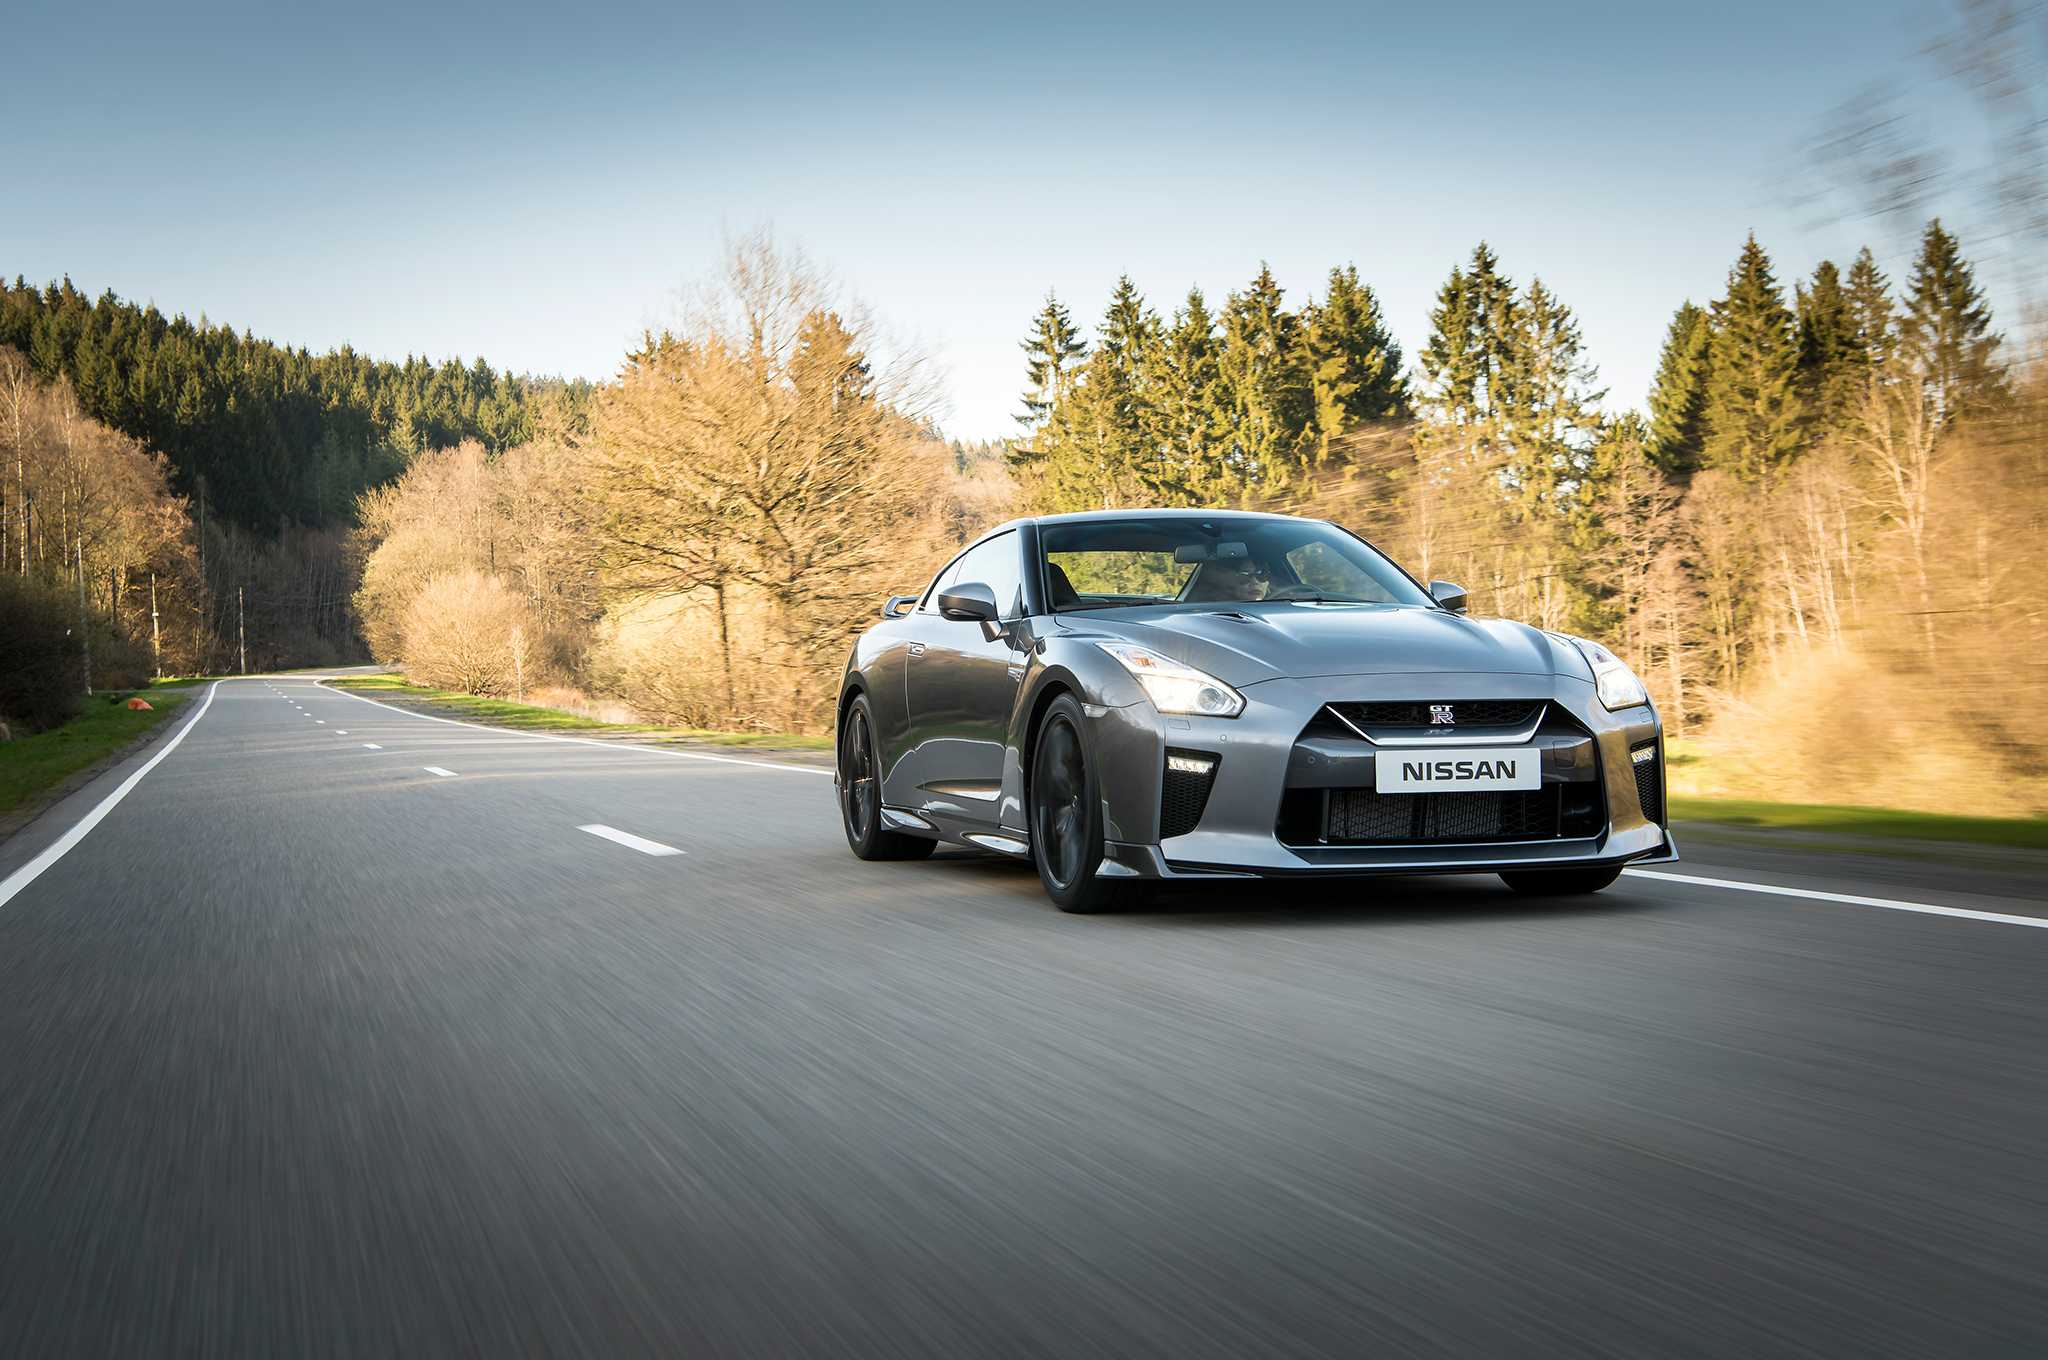 2017 Nissan GT-R Base Model Pricing Confirmed To Be $111,585